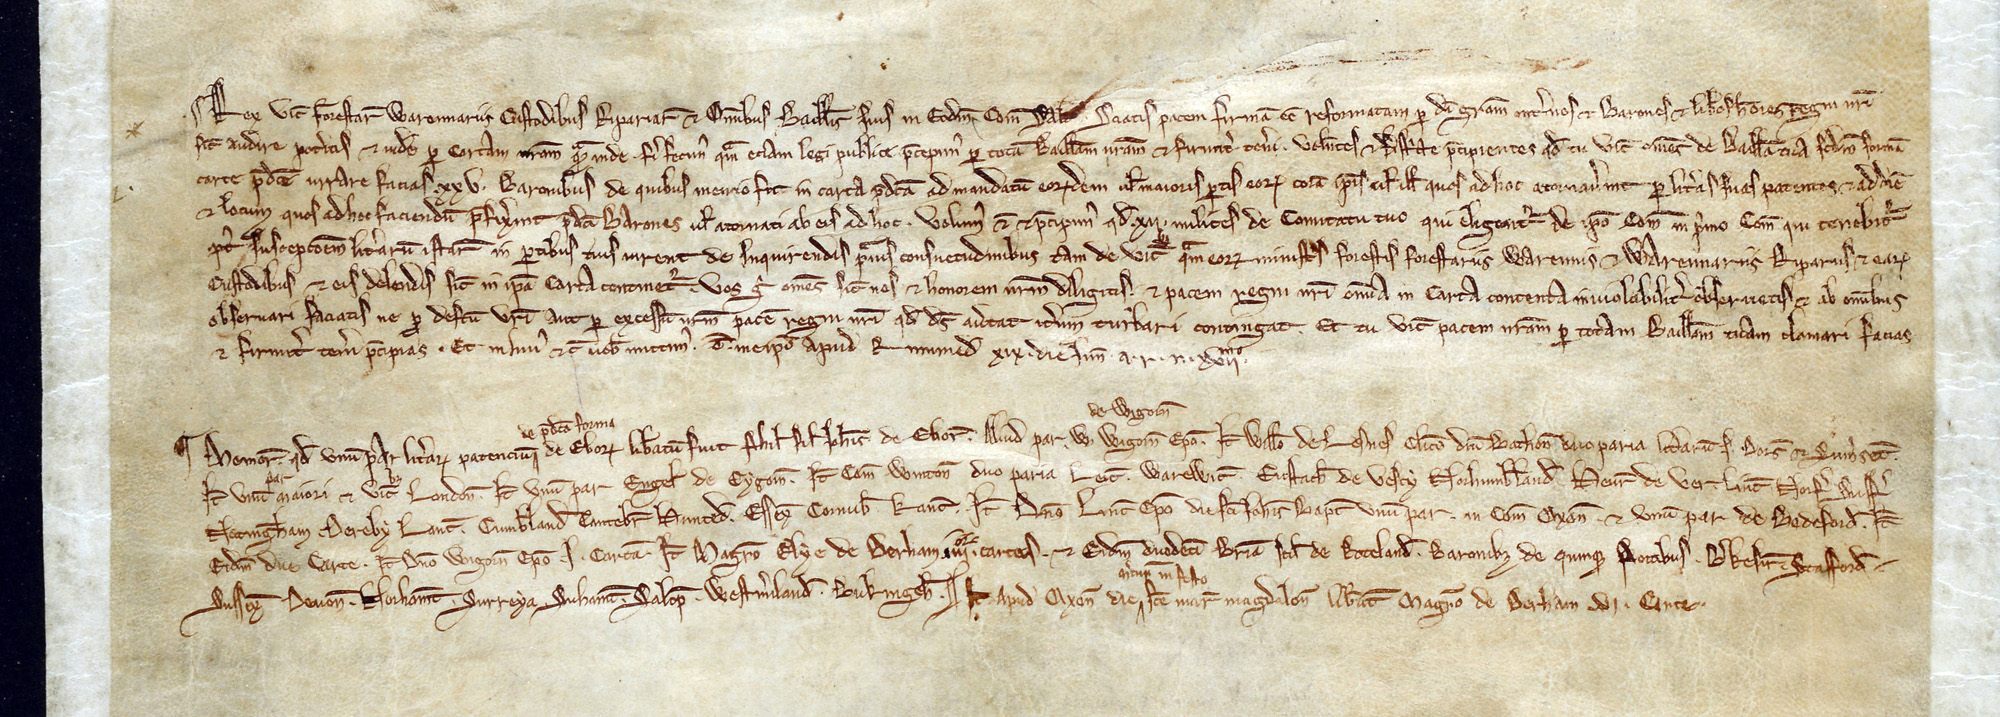 Study extract 1 from letters and grants of King John 1215